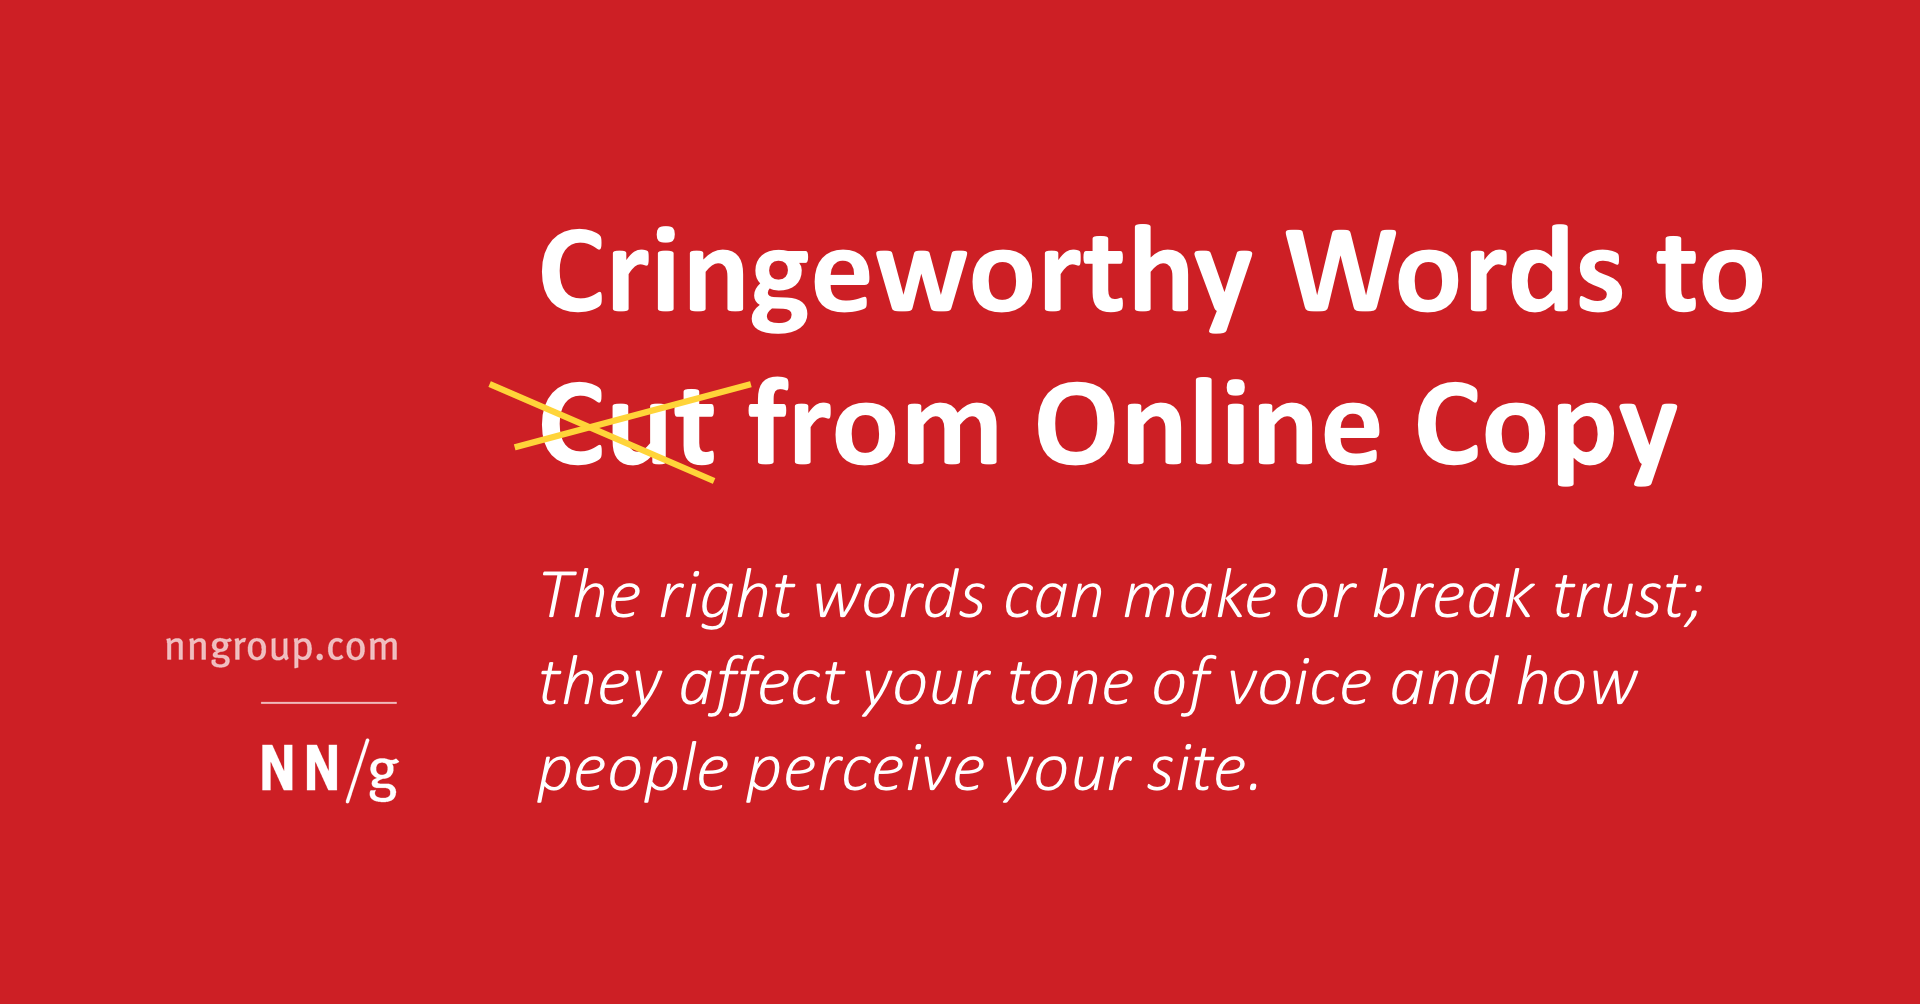 Cringeworthy Words to Cut from Your Online Copy